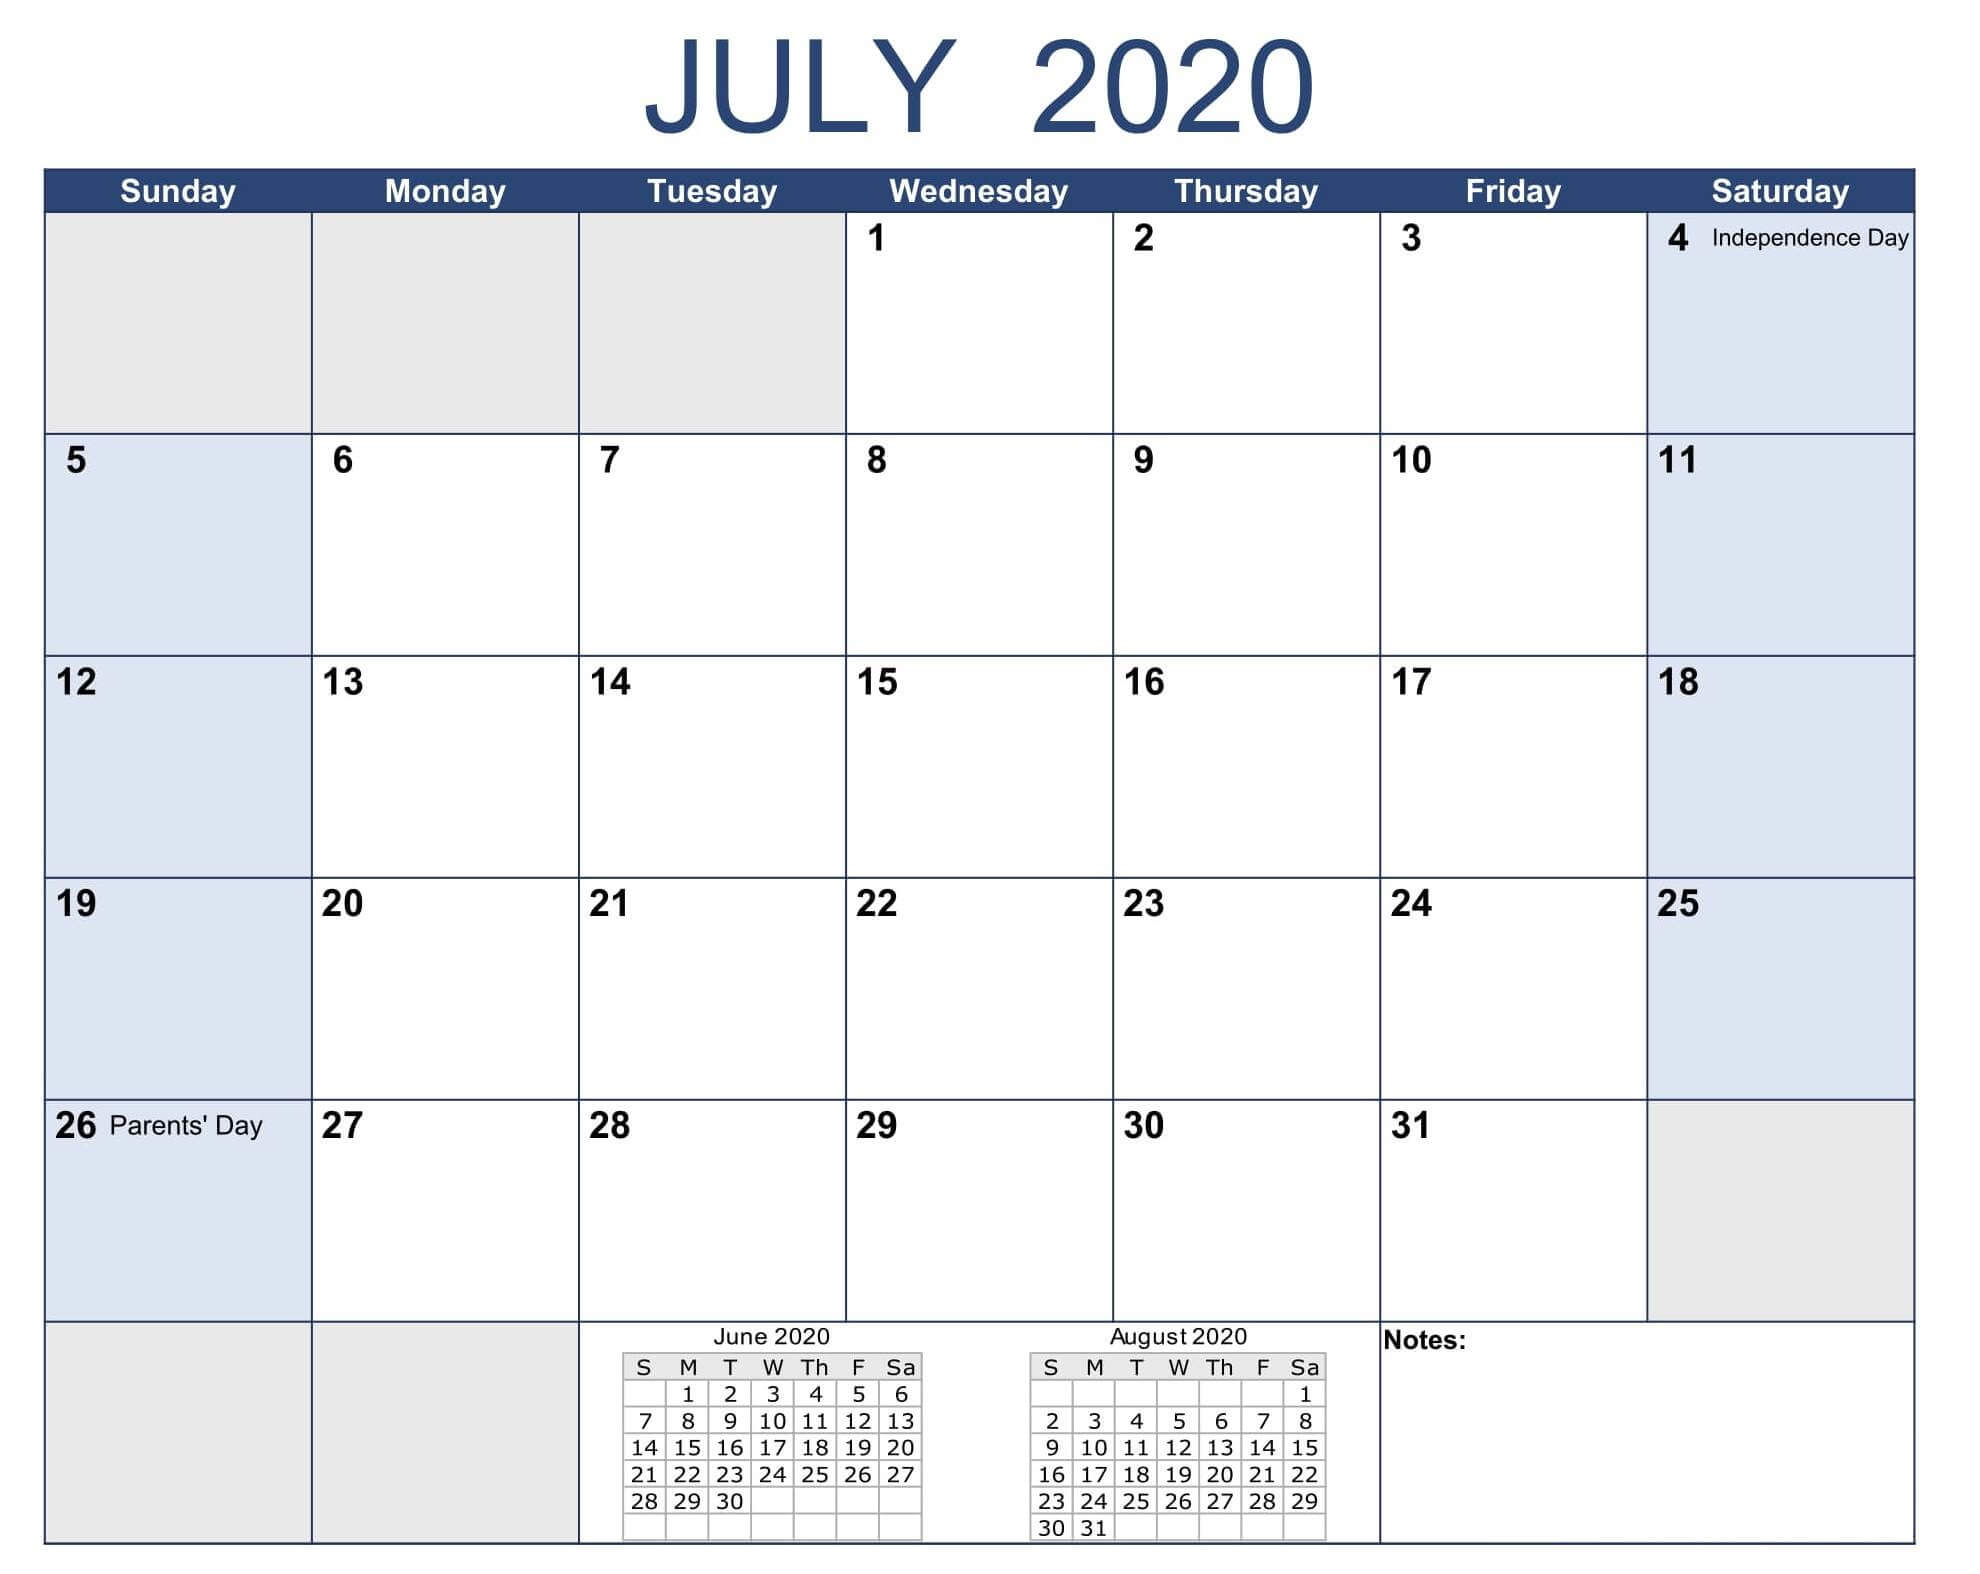 July 2020 Bank Holidays Calendar